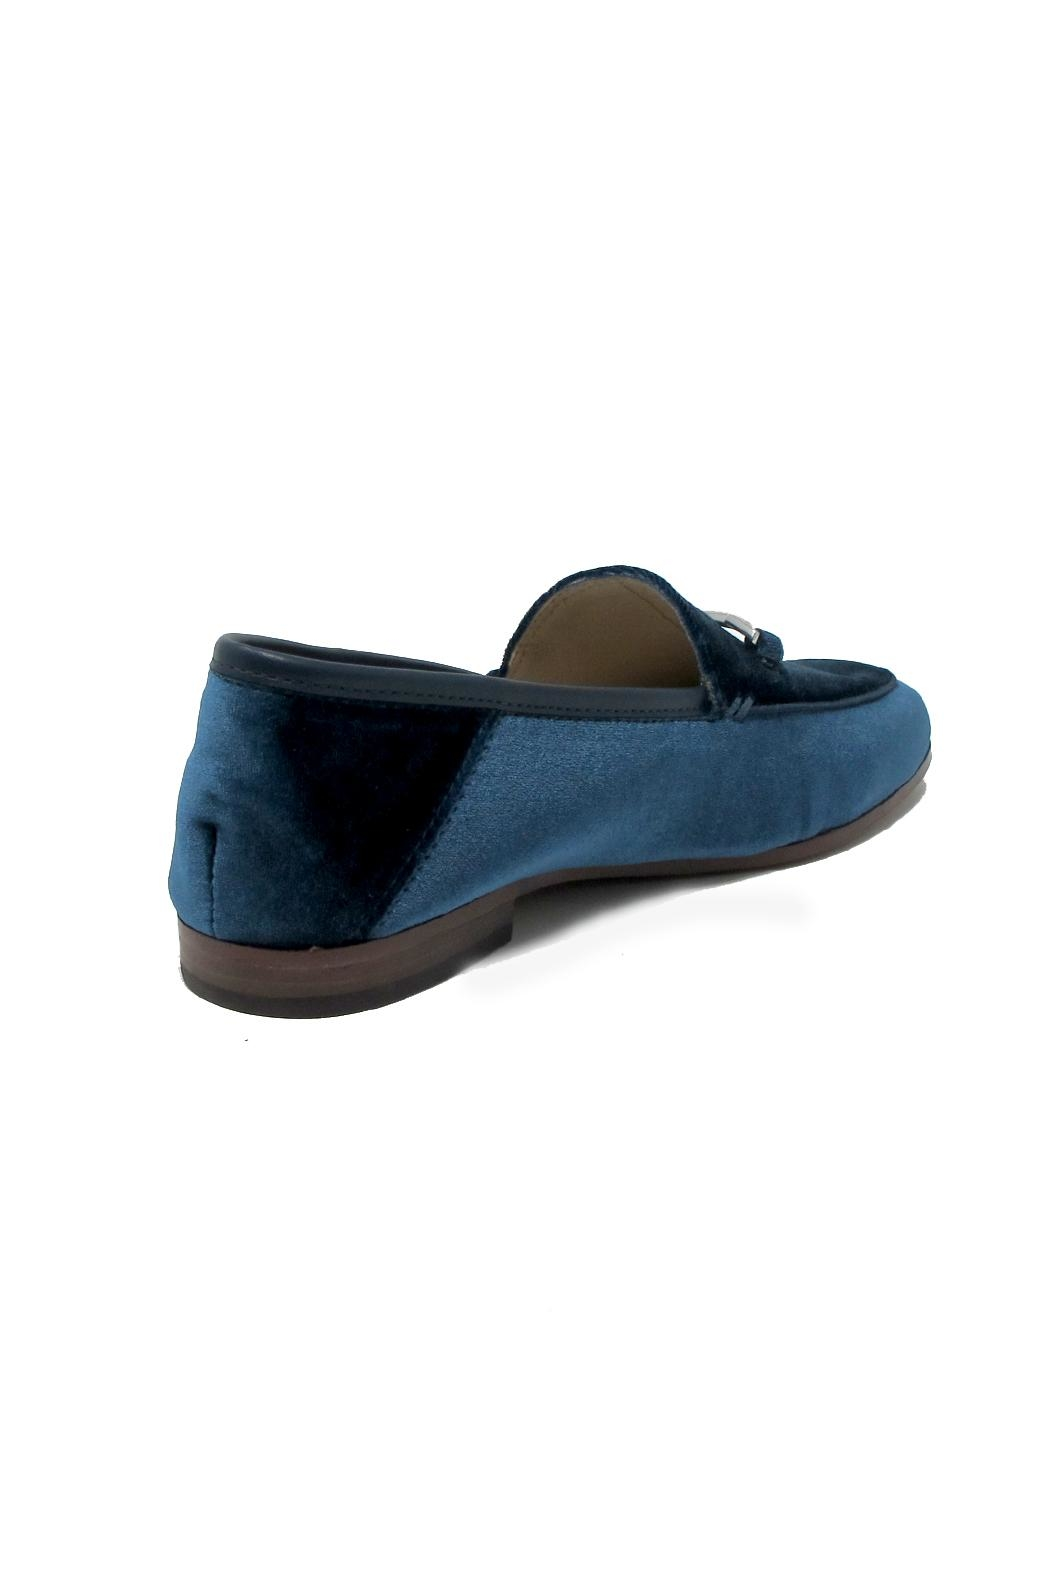 Sam Edelman Blue Velvet Loafers - Front Full Image